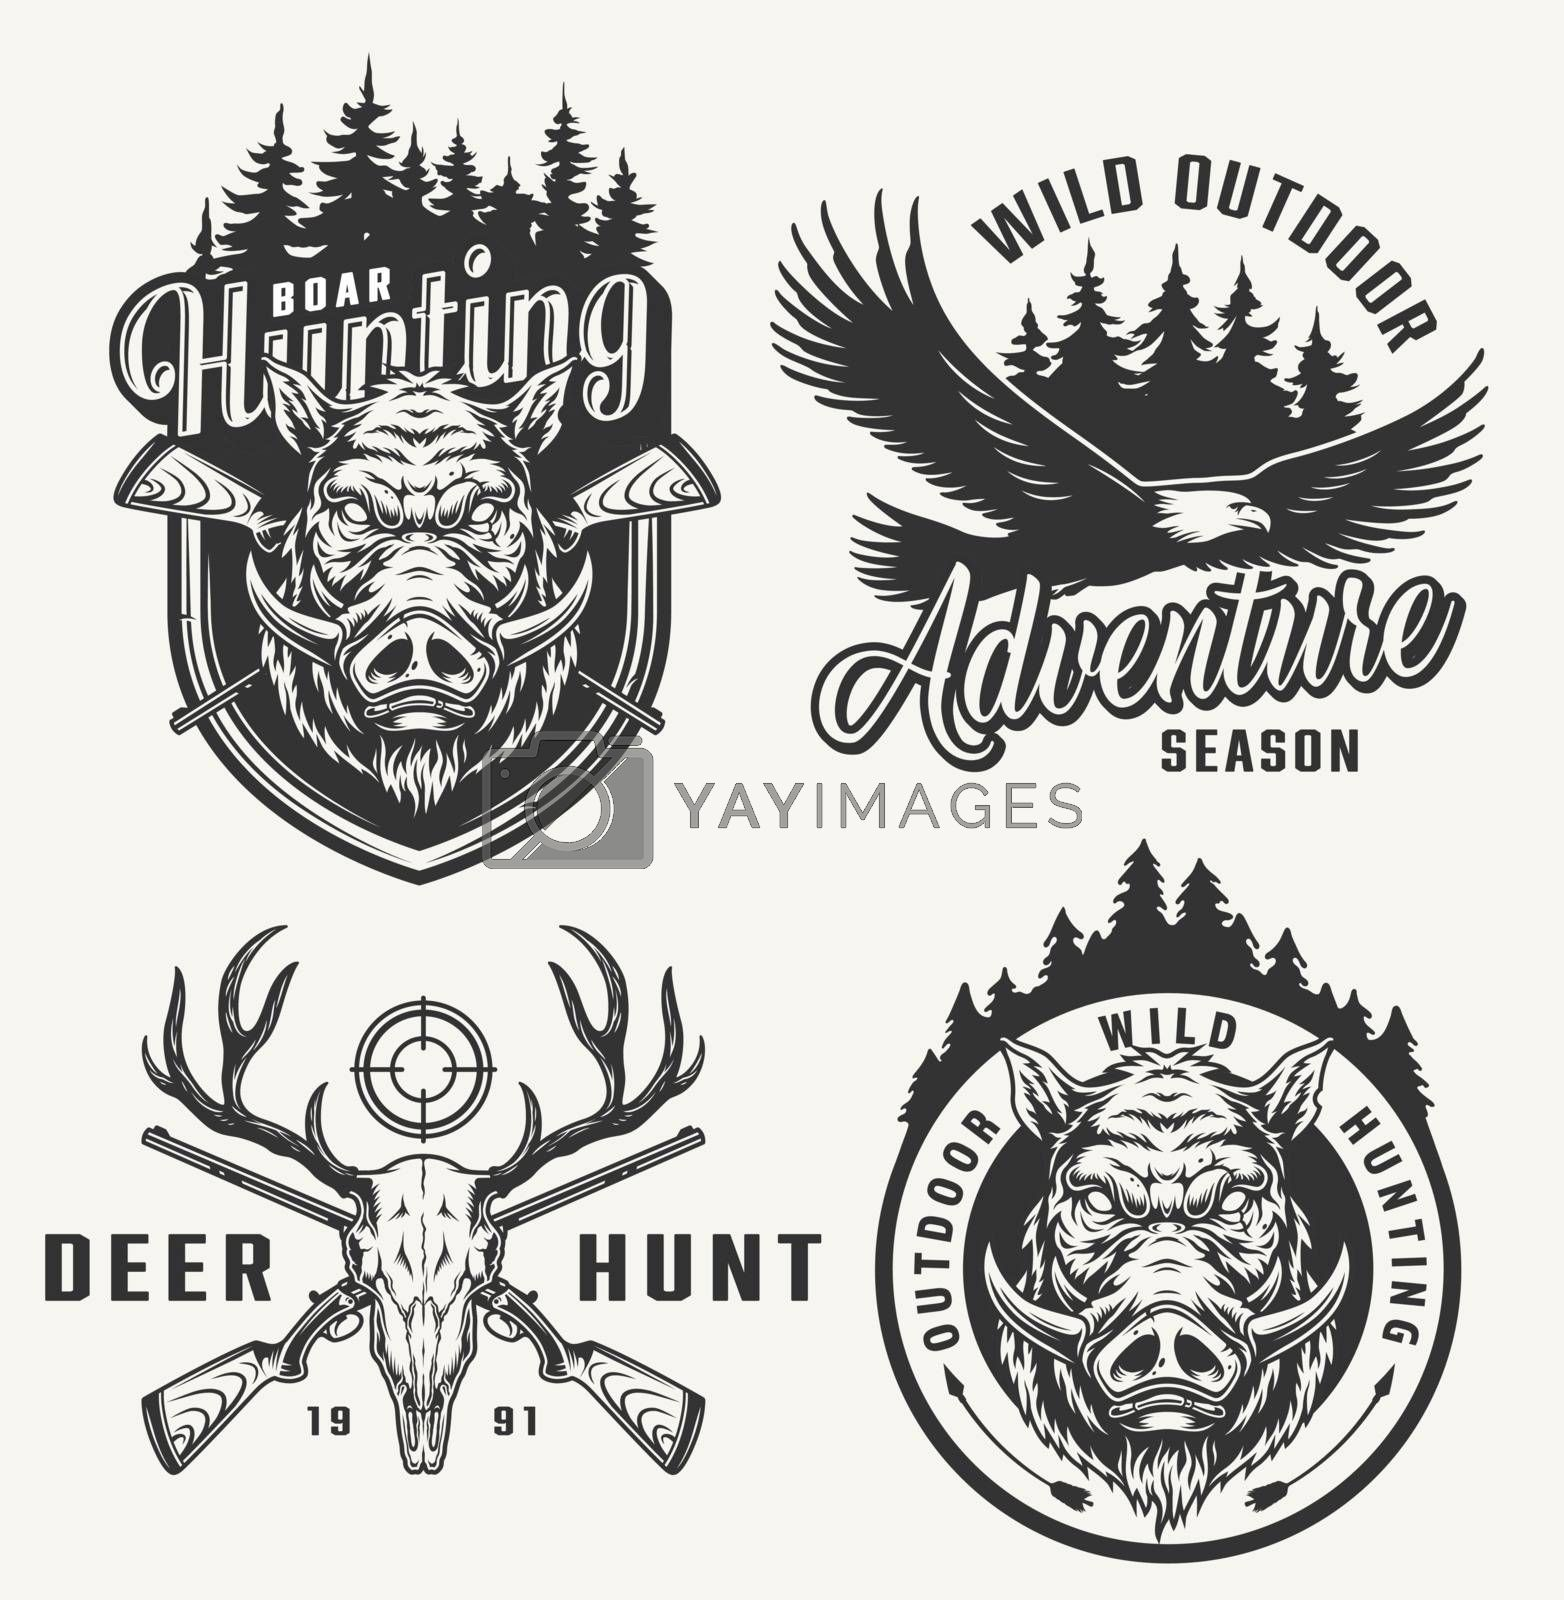 Vintage hunting club prints with boar head deer skull flying eagle crossed guns forest silhouette on light background isolated vector illustration